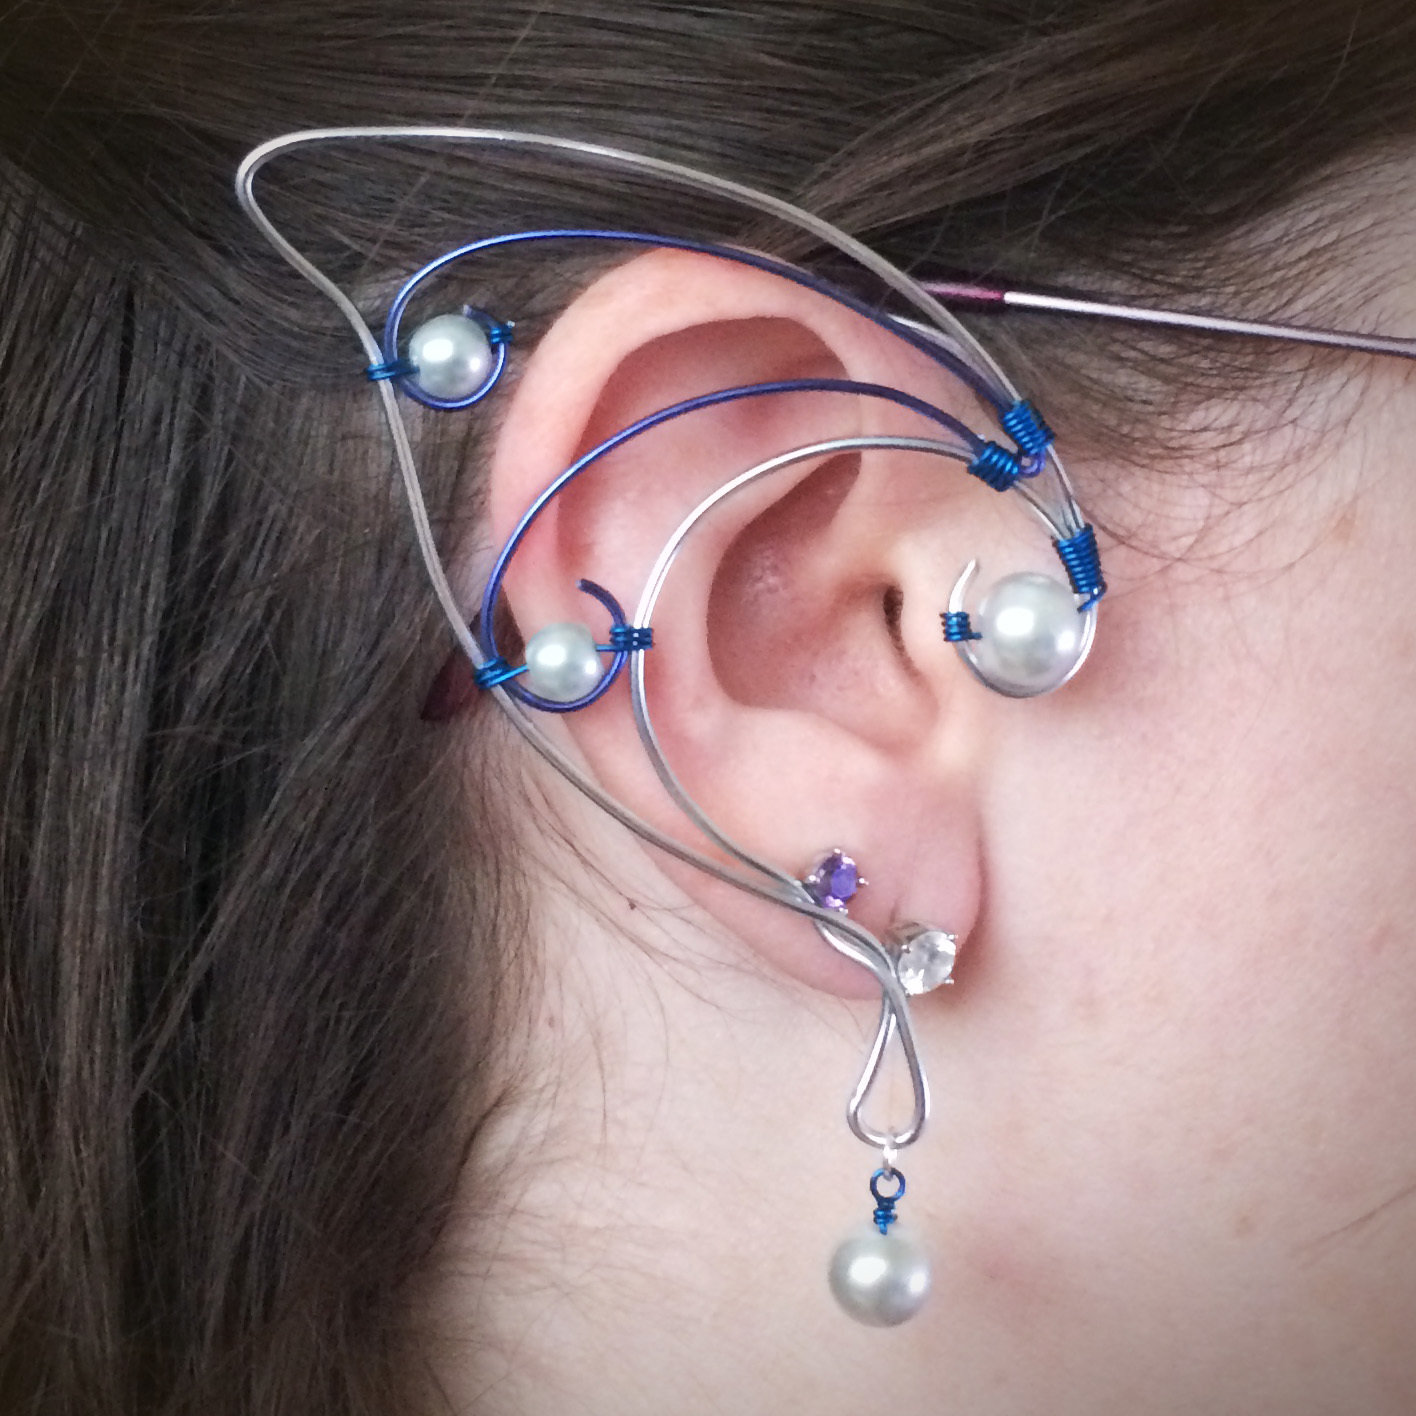 Elf Ear Cuff - Silver and Blue with beads EC010